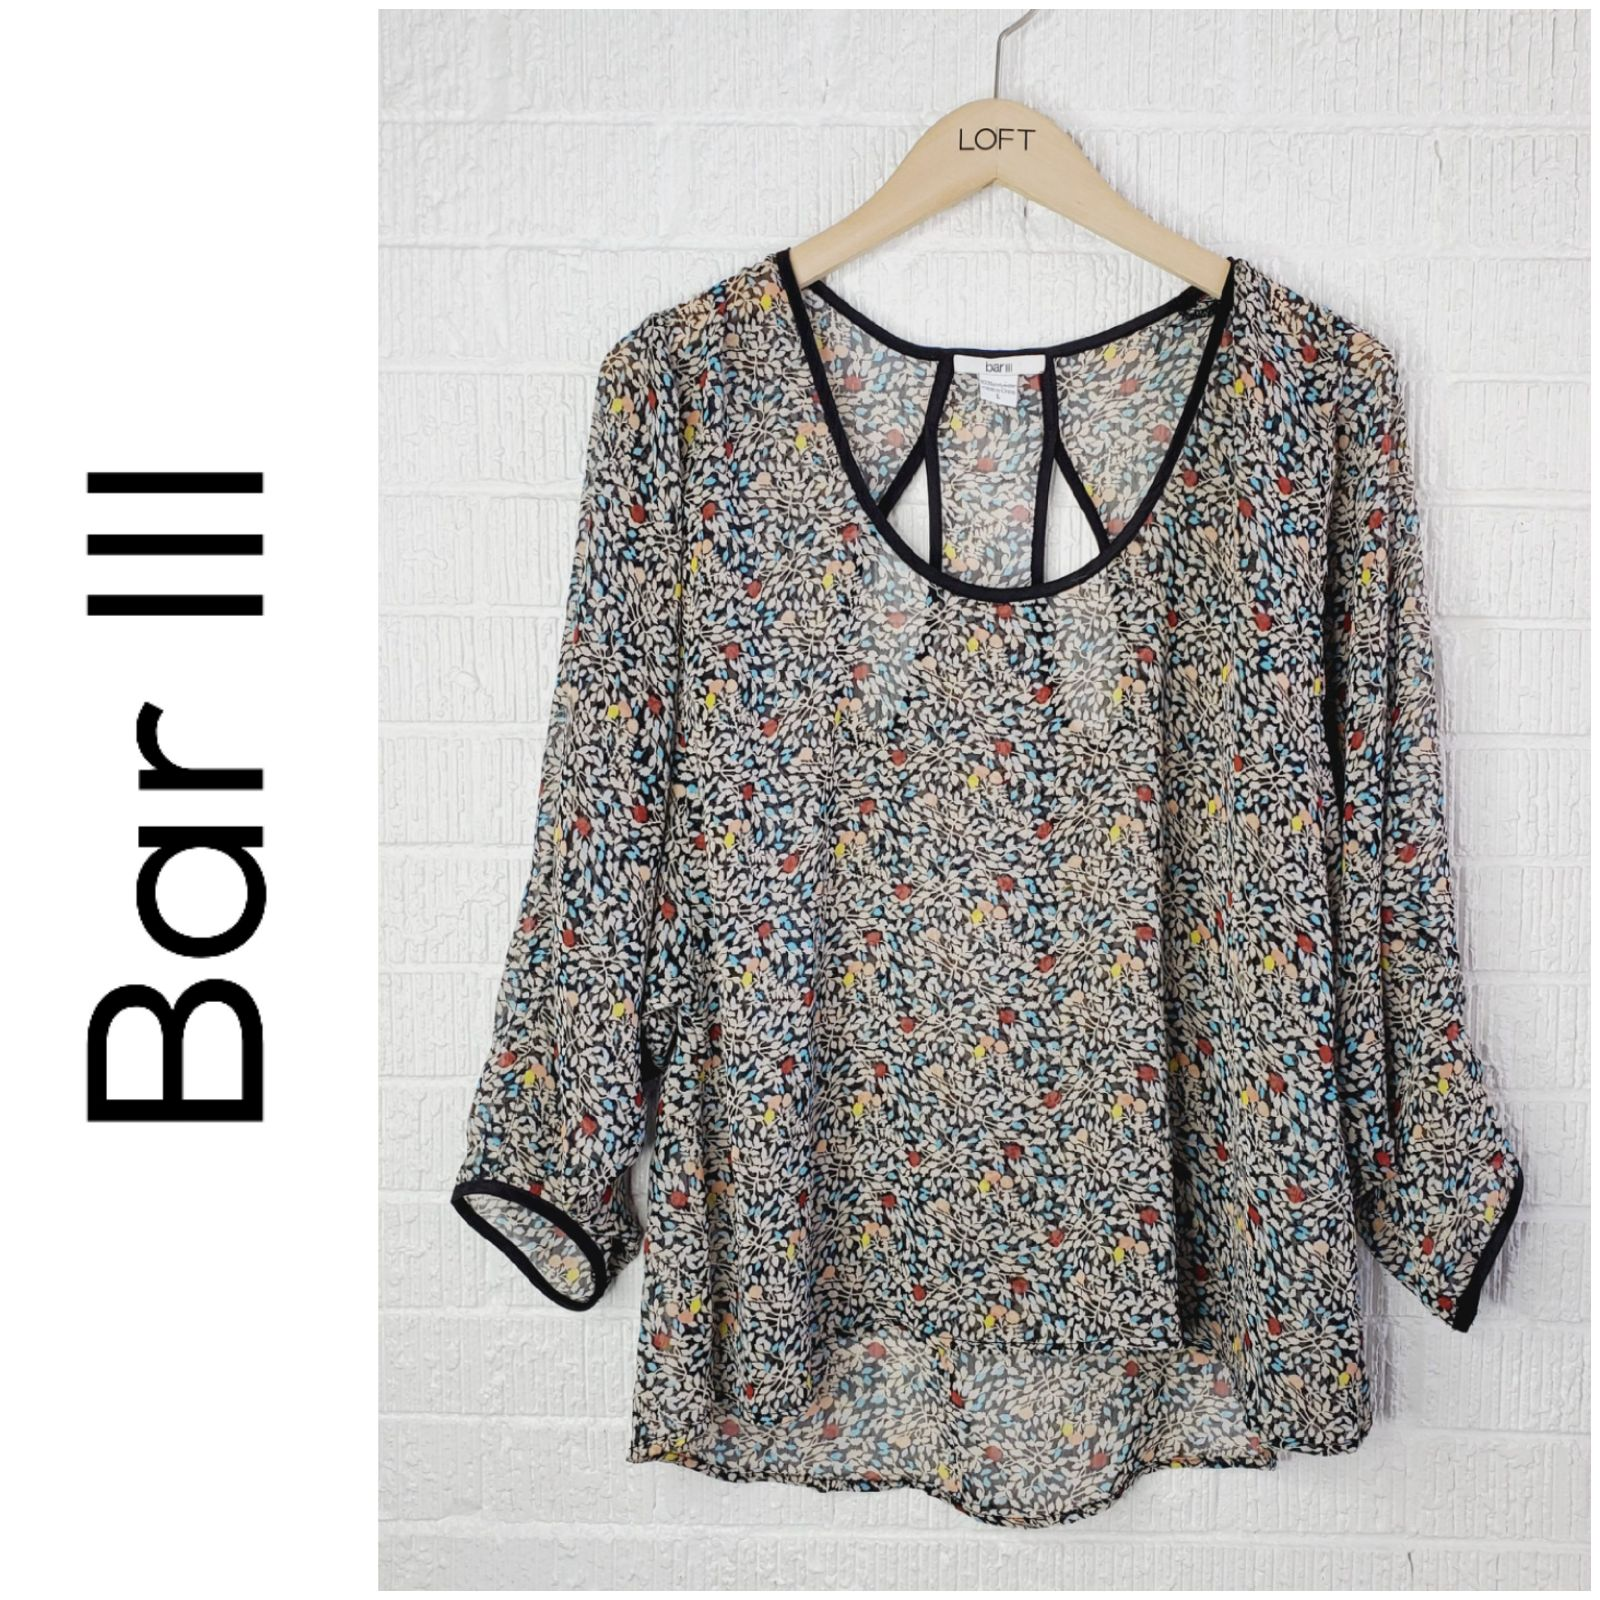 Sheer floral flowy blouse with cut out